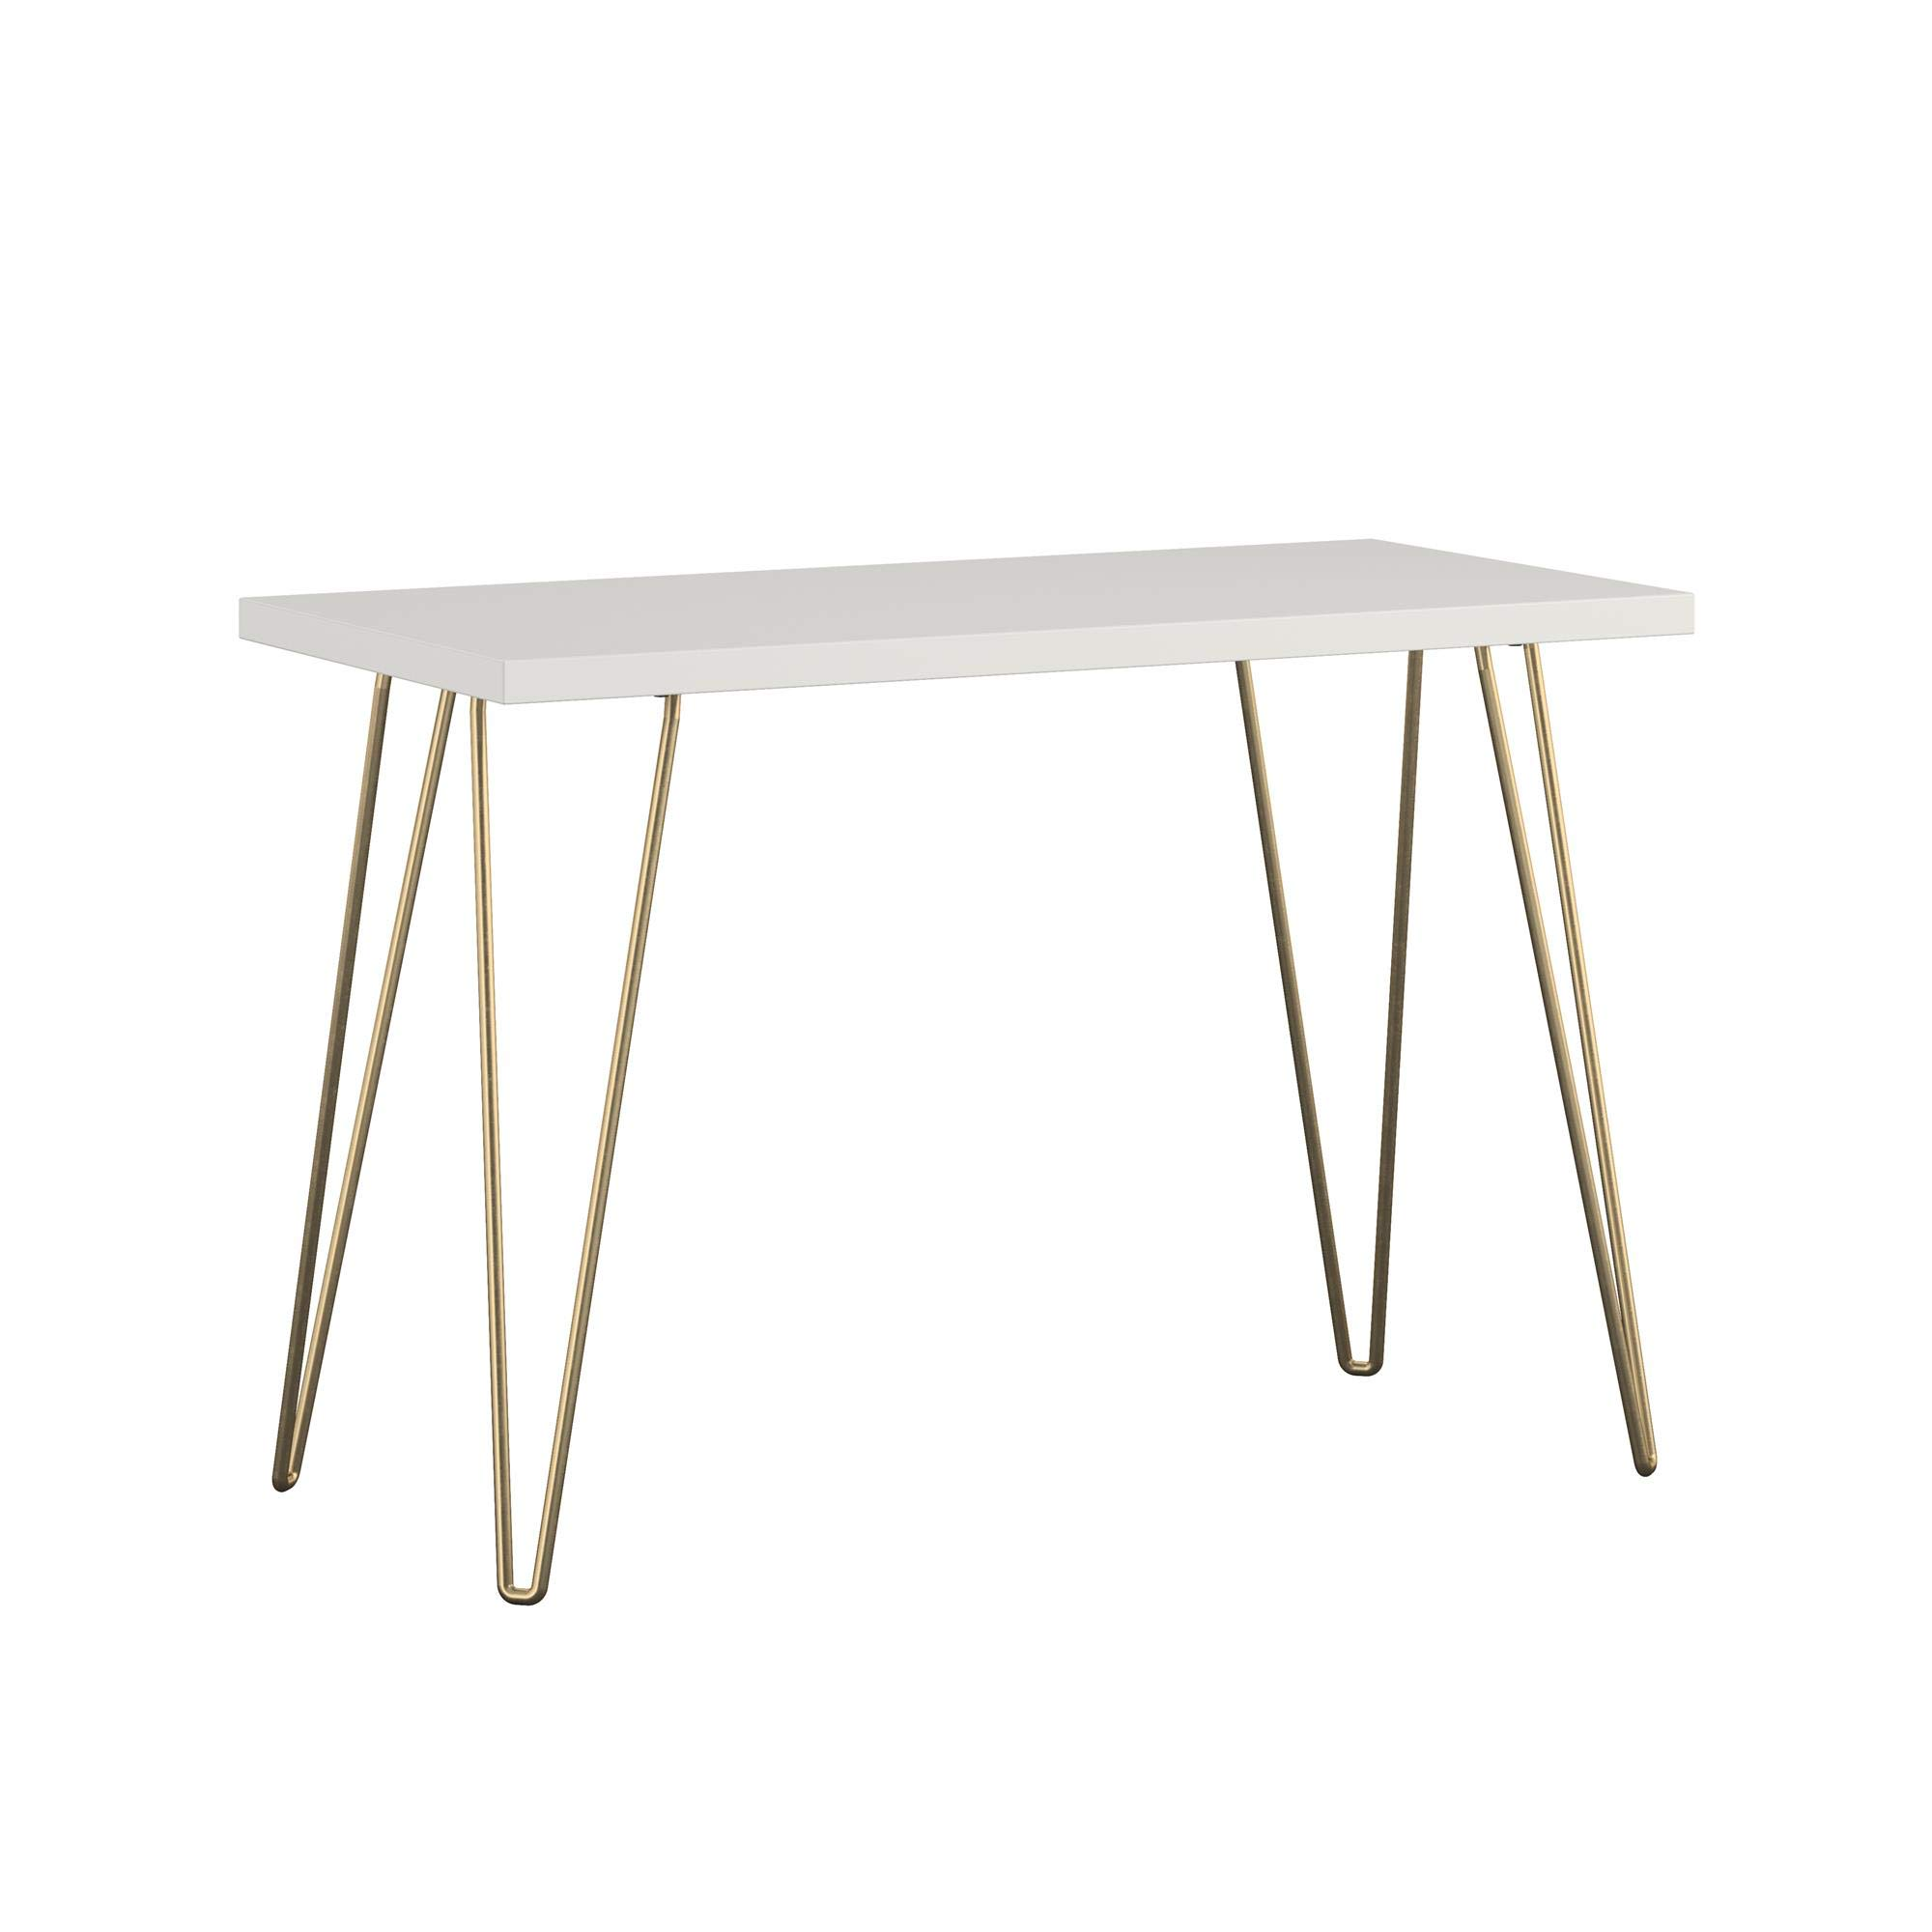 AmazonBasics Retro Hairpin Compact Computer Desk - Solid White with Matte Gold Legs by AmazonBasics (Image #1)